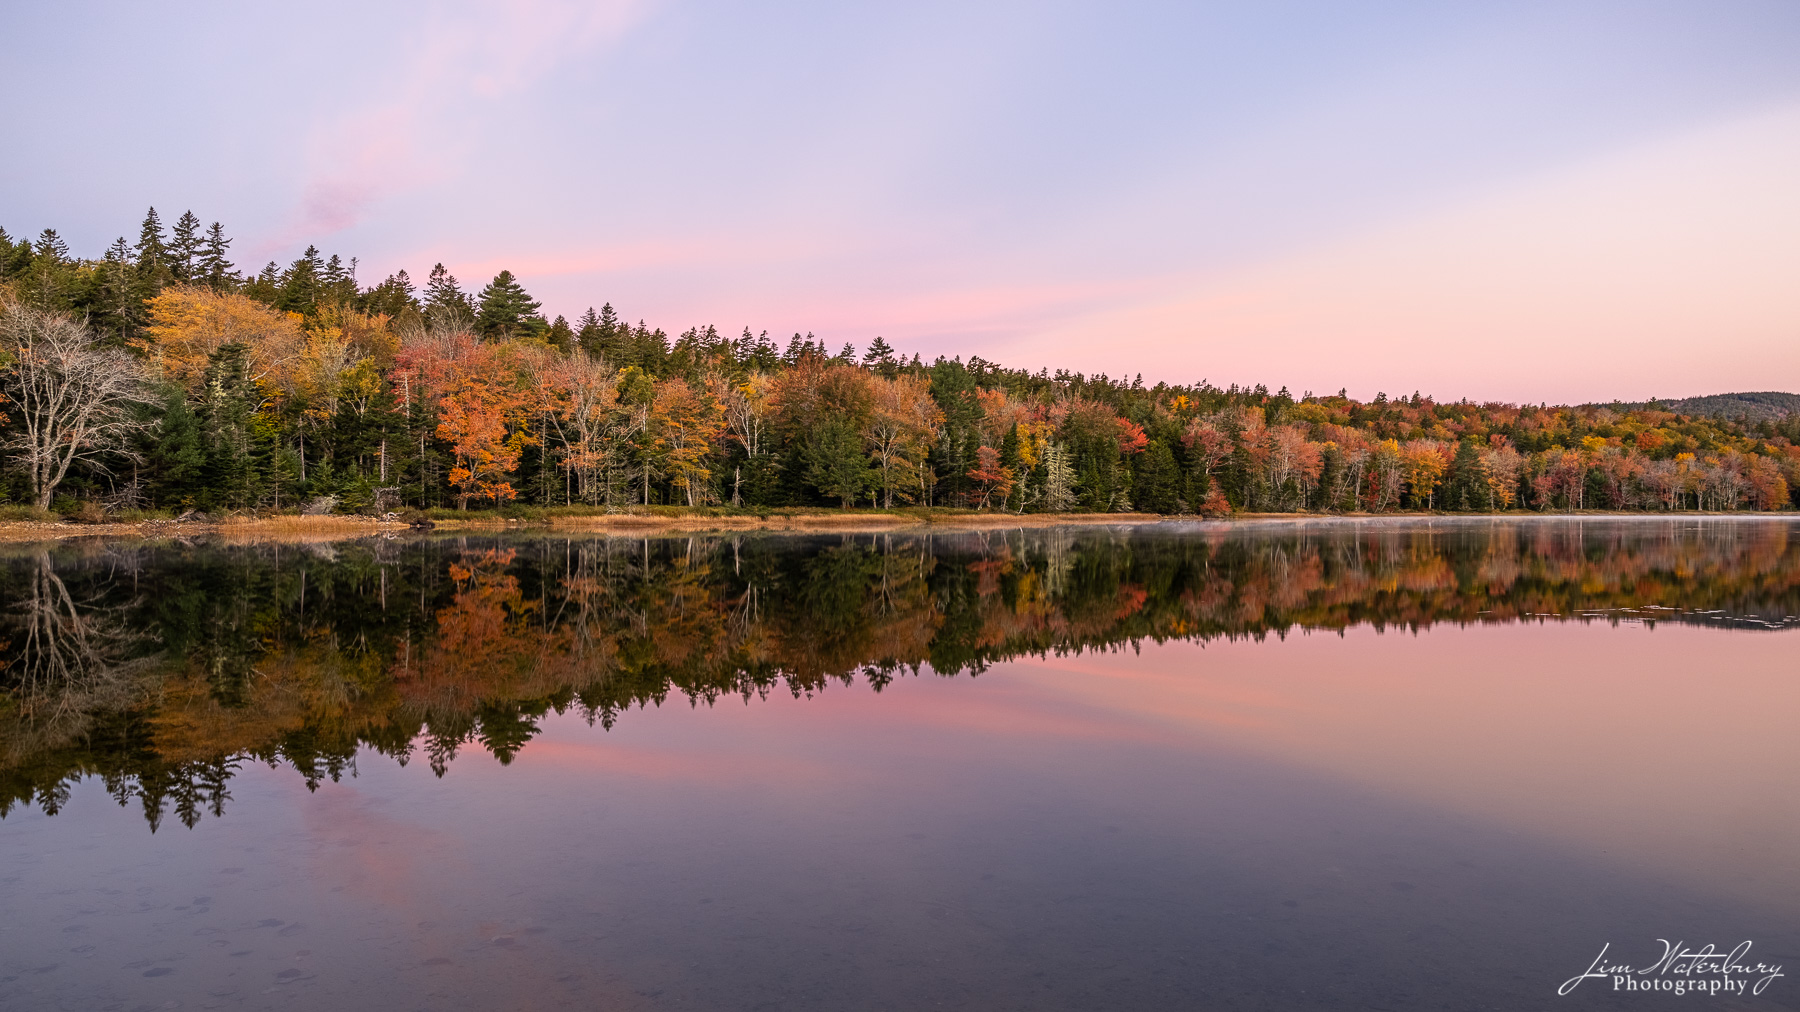 A calm morning, just before sunrise, reveals delicate pastel colors in the sky and a wonderful reflection of the trees with their...